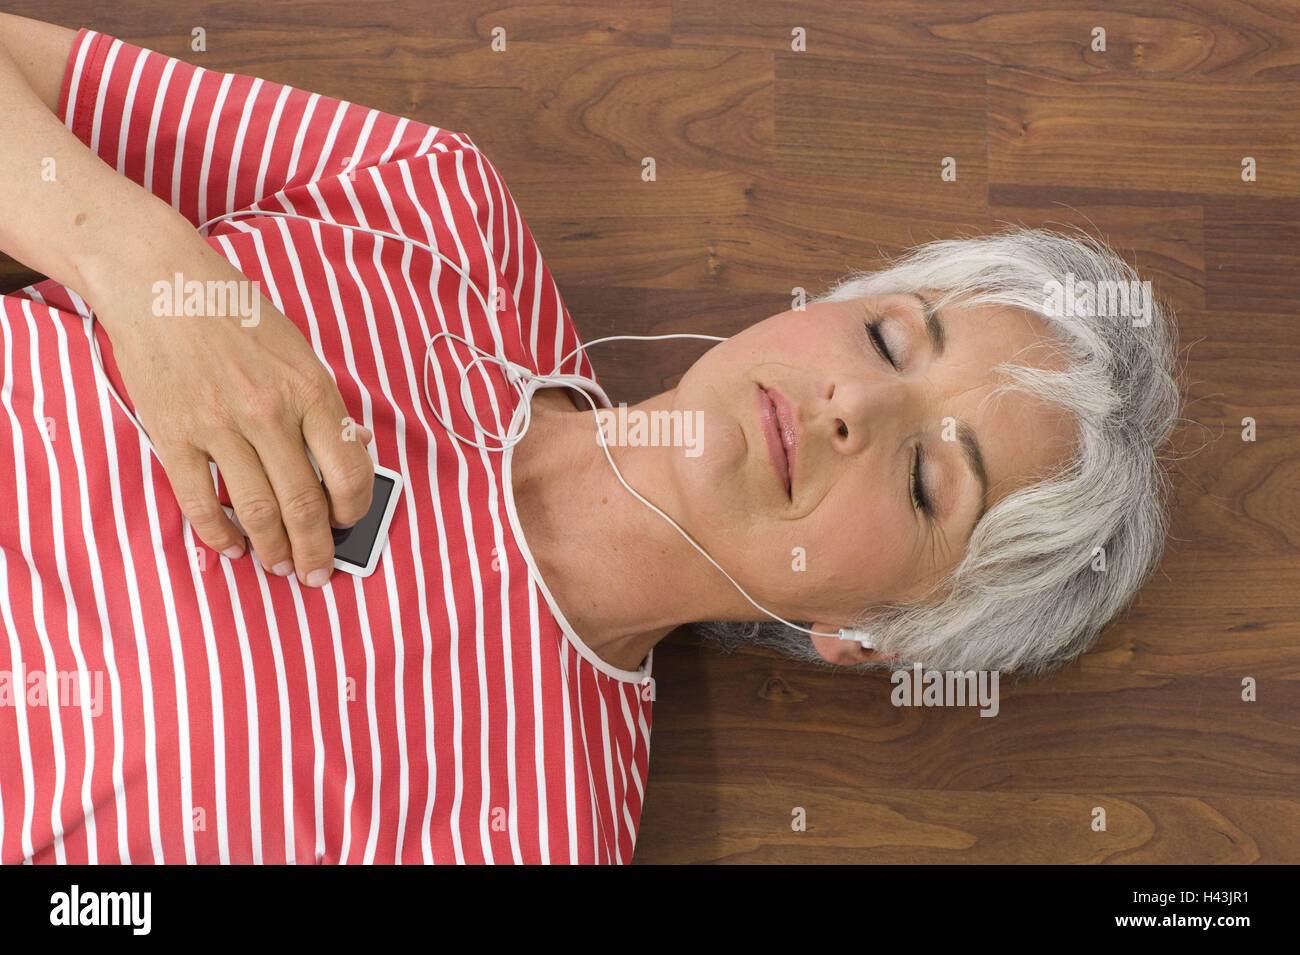 Senior, floor, lie, earphones, recreation, portrait, from above, people, senior citizens, woman, lifestyle, cultivated, - Stock Image